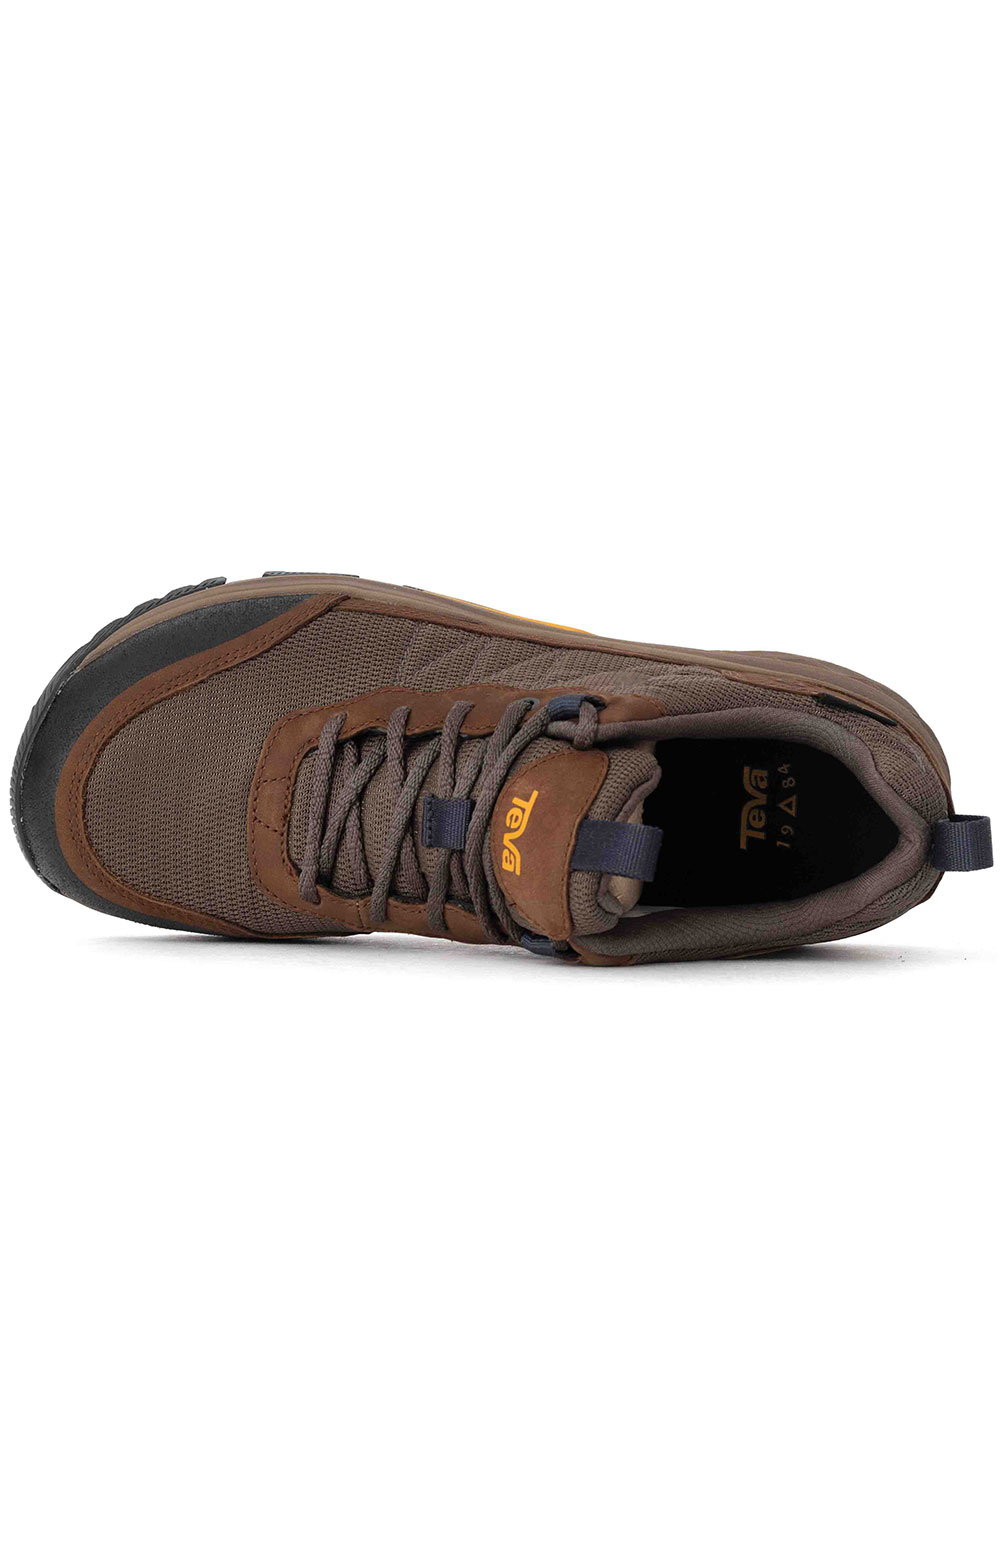 (1116627) Ridgeview Low Shoes - Brown  2